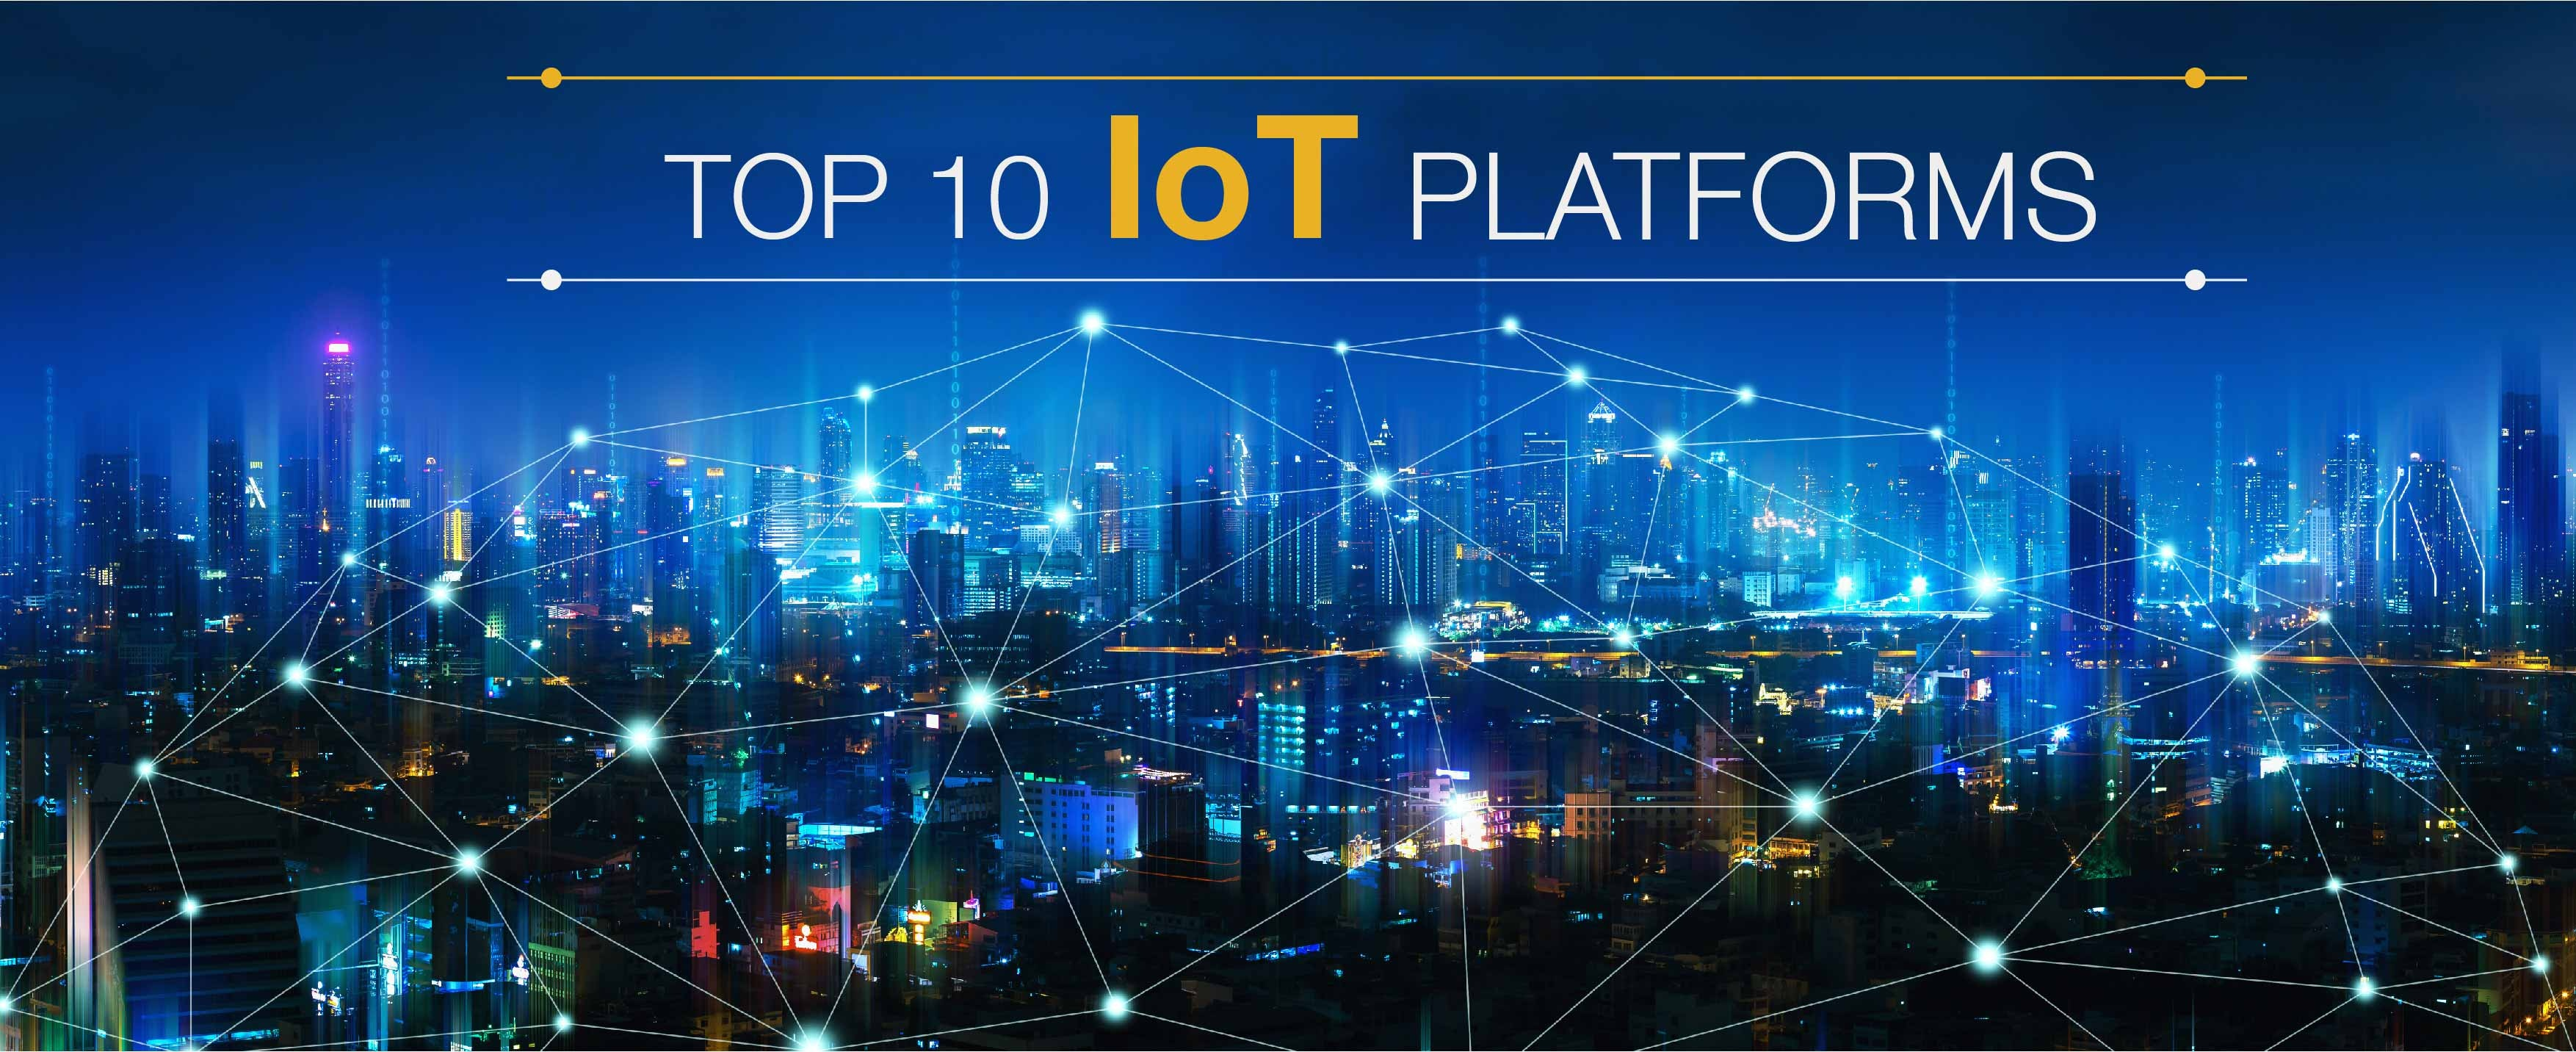 Which is the best platform for IOT? - Quora